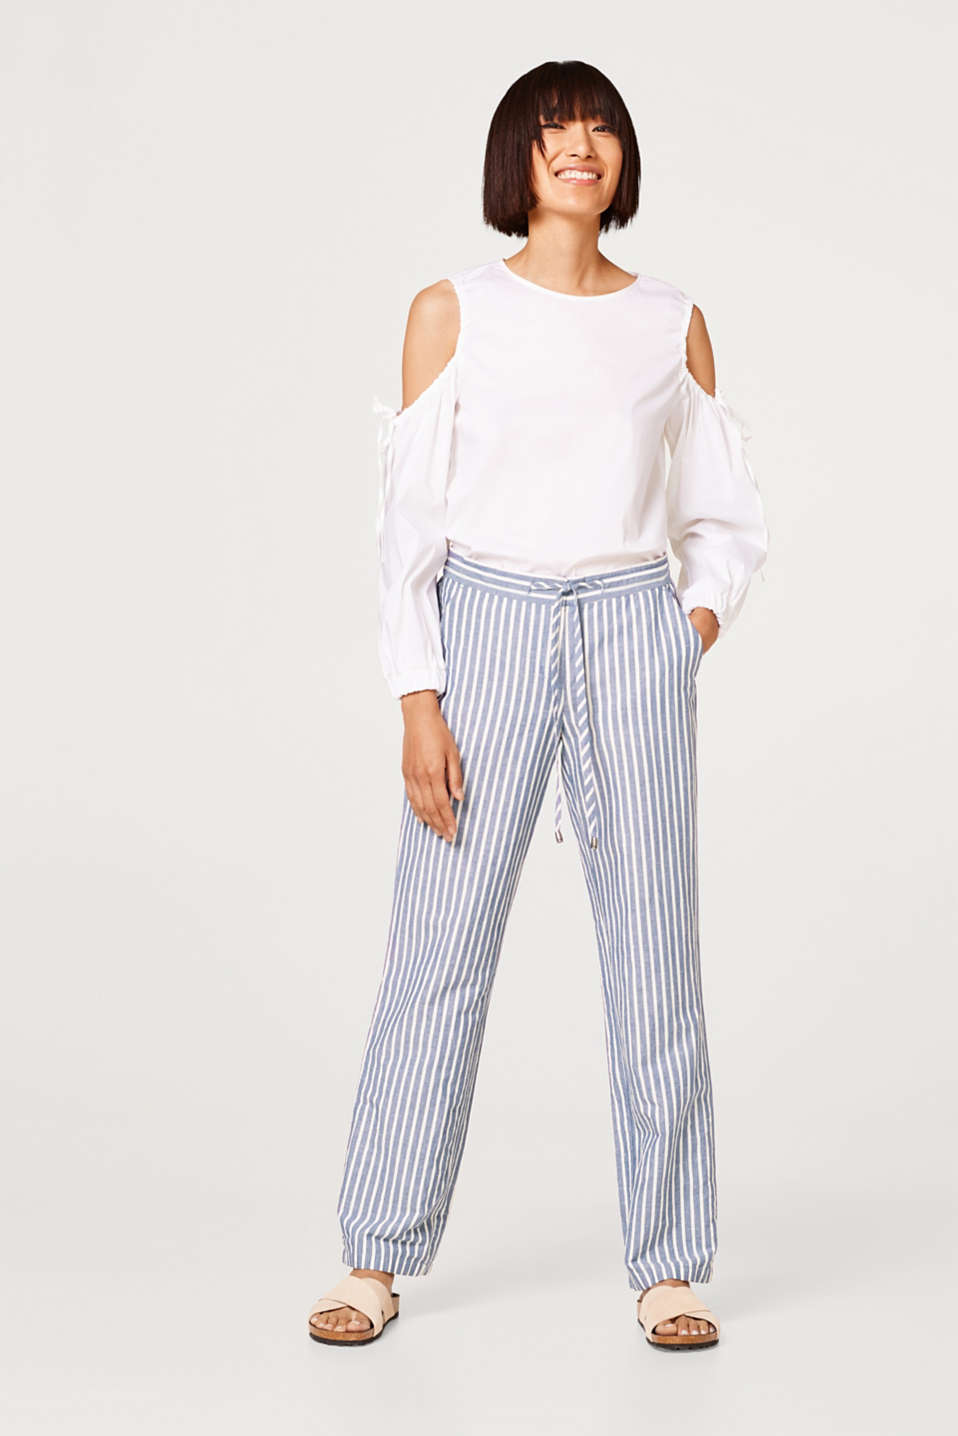 Esprit - Made of blended linen: striped trousers in a loose fit